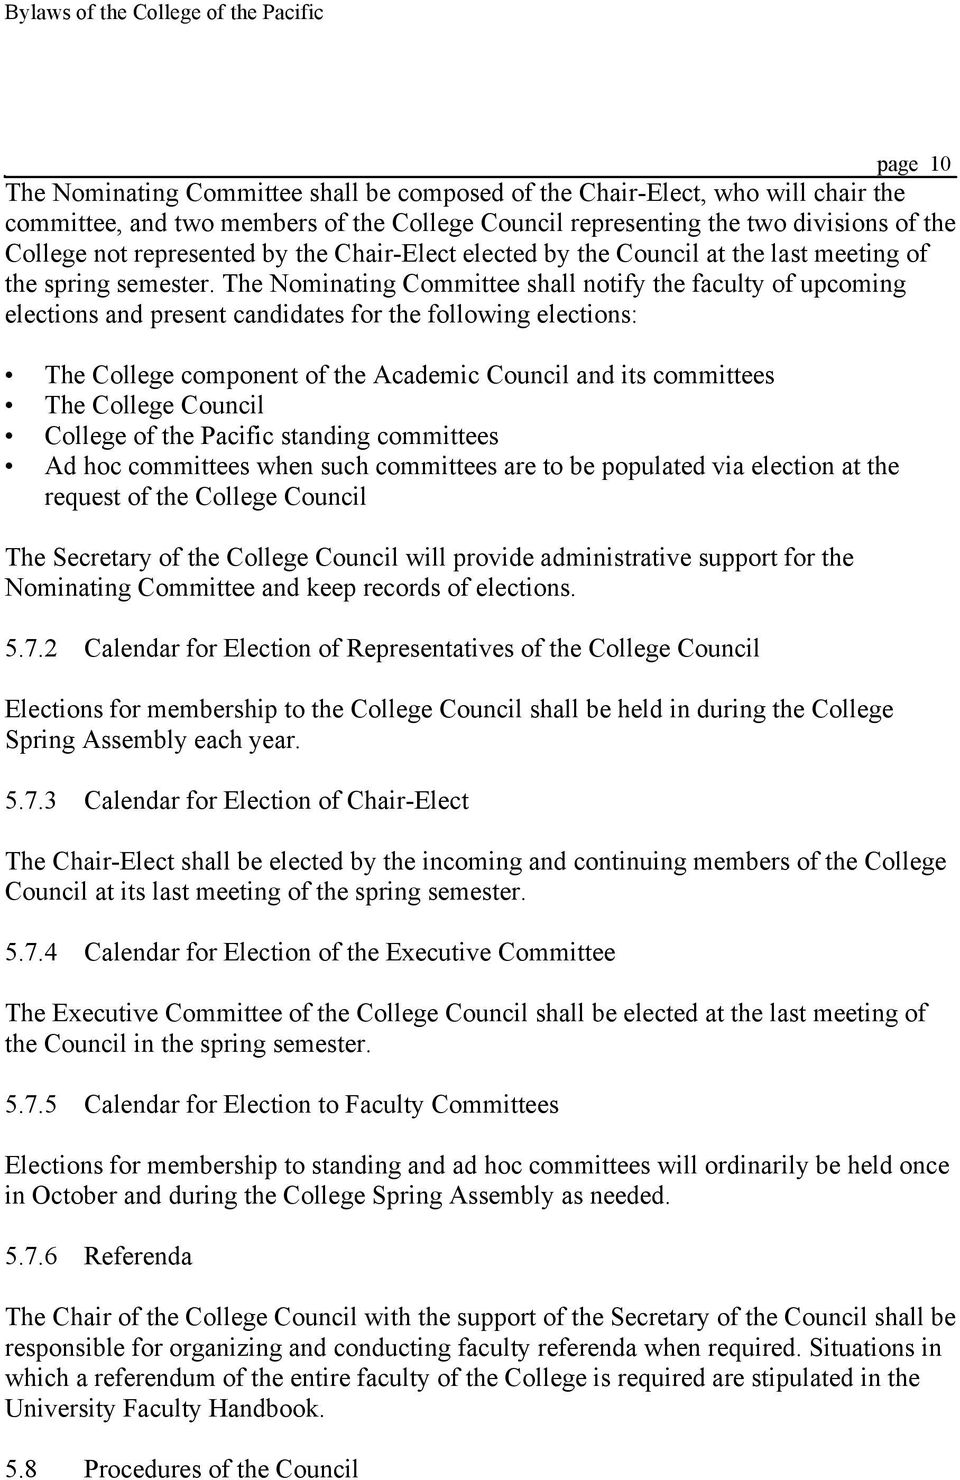 The Nominating Committee shall notify the faculty of upcoming elections and present candidates for the following elections: The College component of the Academic Council and its committees The